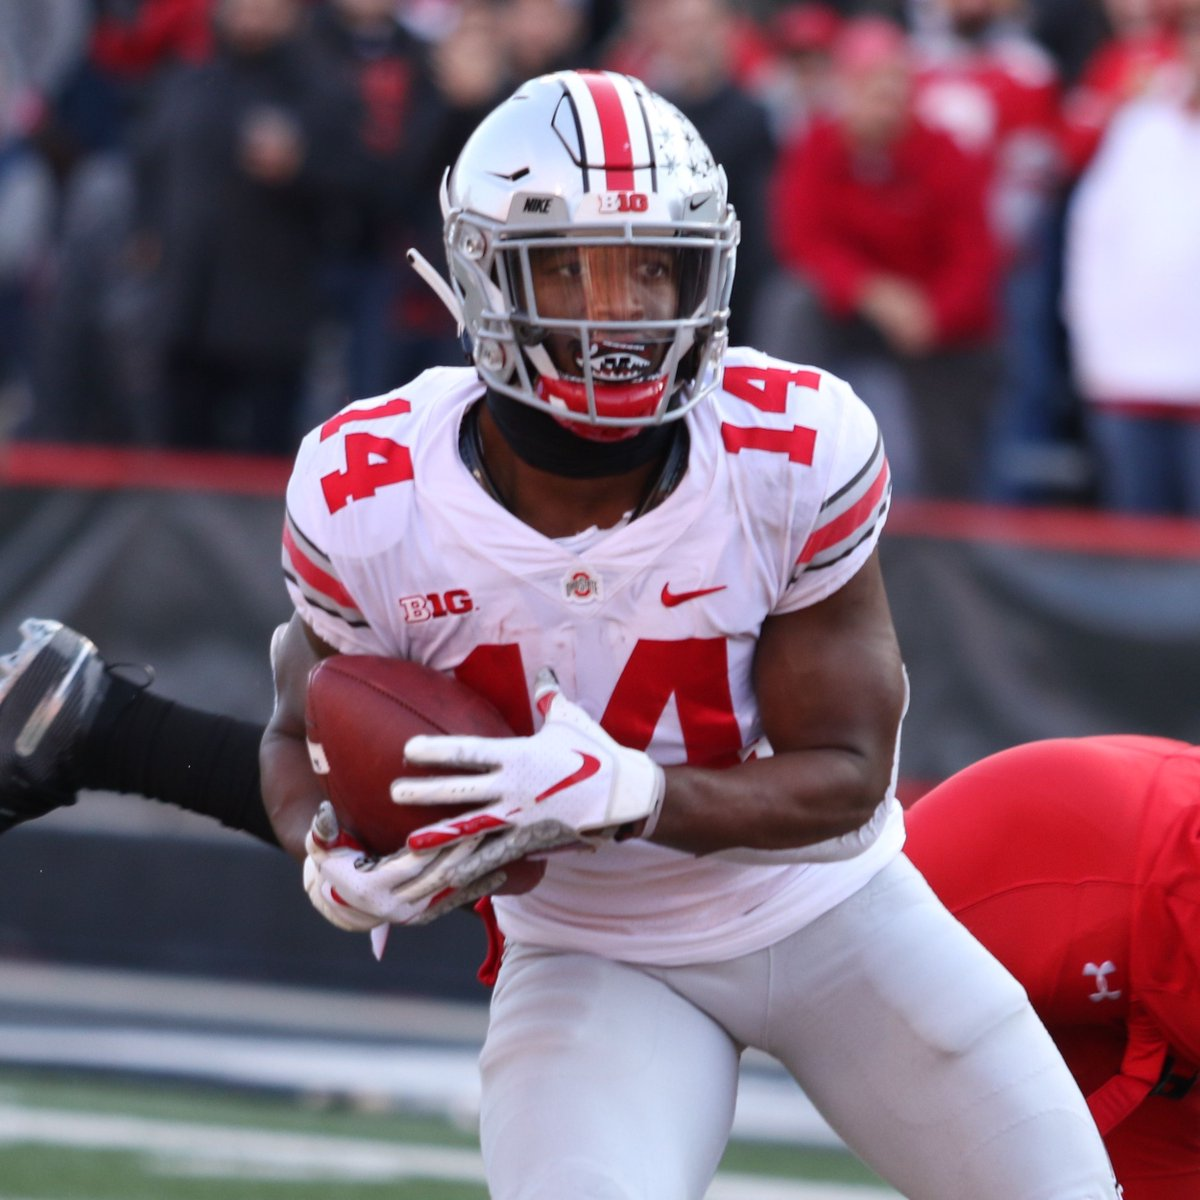 K.J. Hill is named to the preseason watch list for the Biletnikoff Award, given annually to the nations top receiver. 11w.rs/2NYNMtI